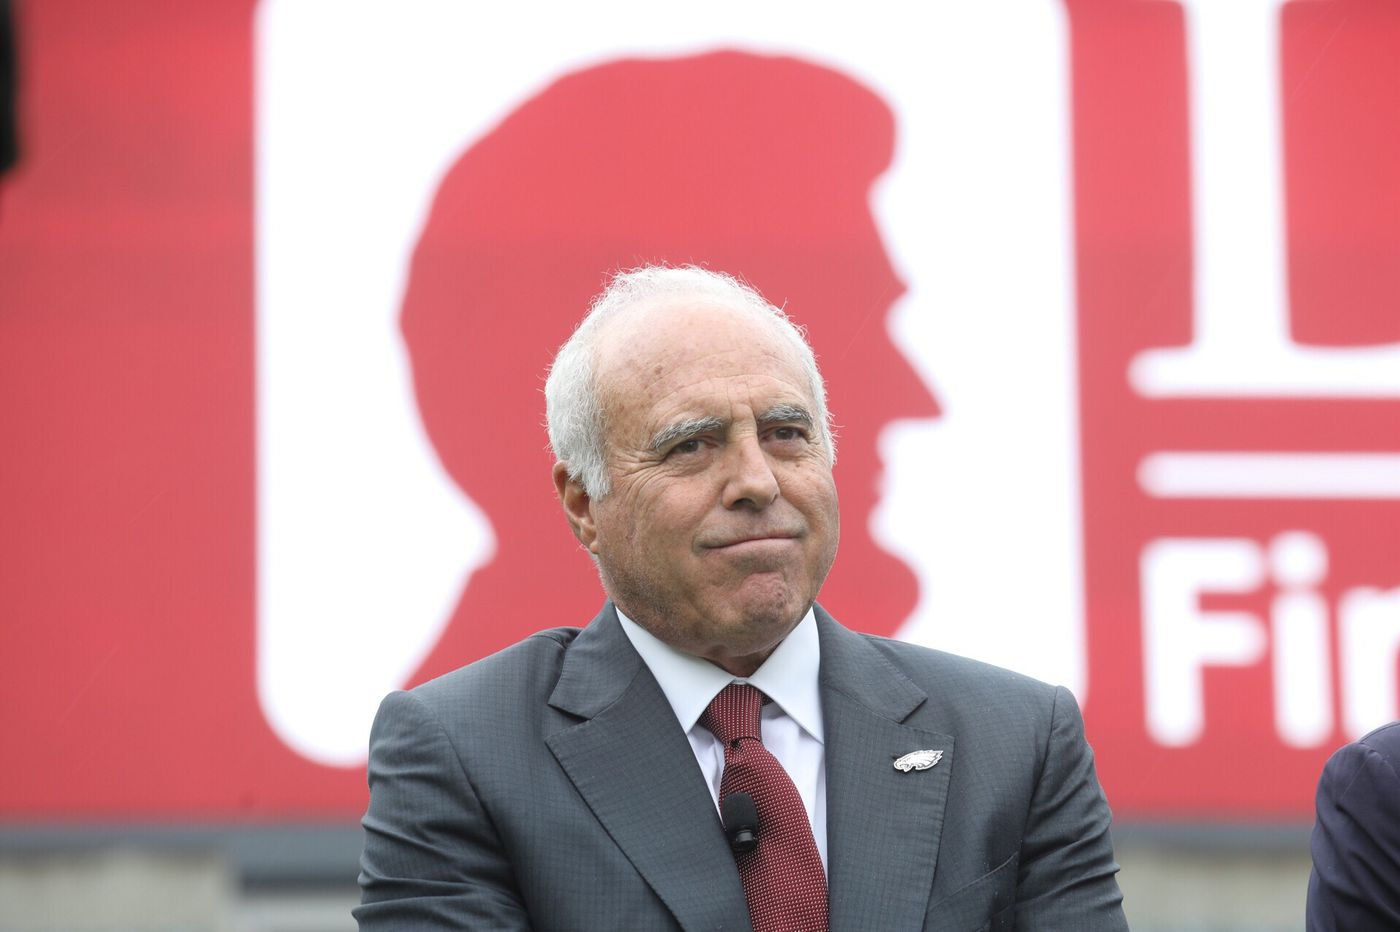 Eagles' Jeffrey Lurie cites Doug Pederson, Nick Foles in commencement address